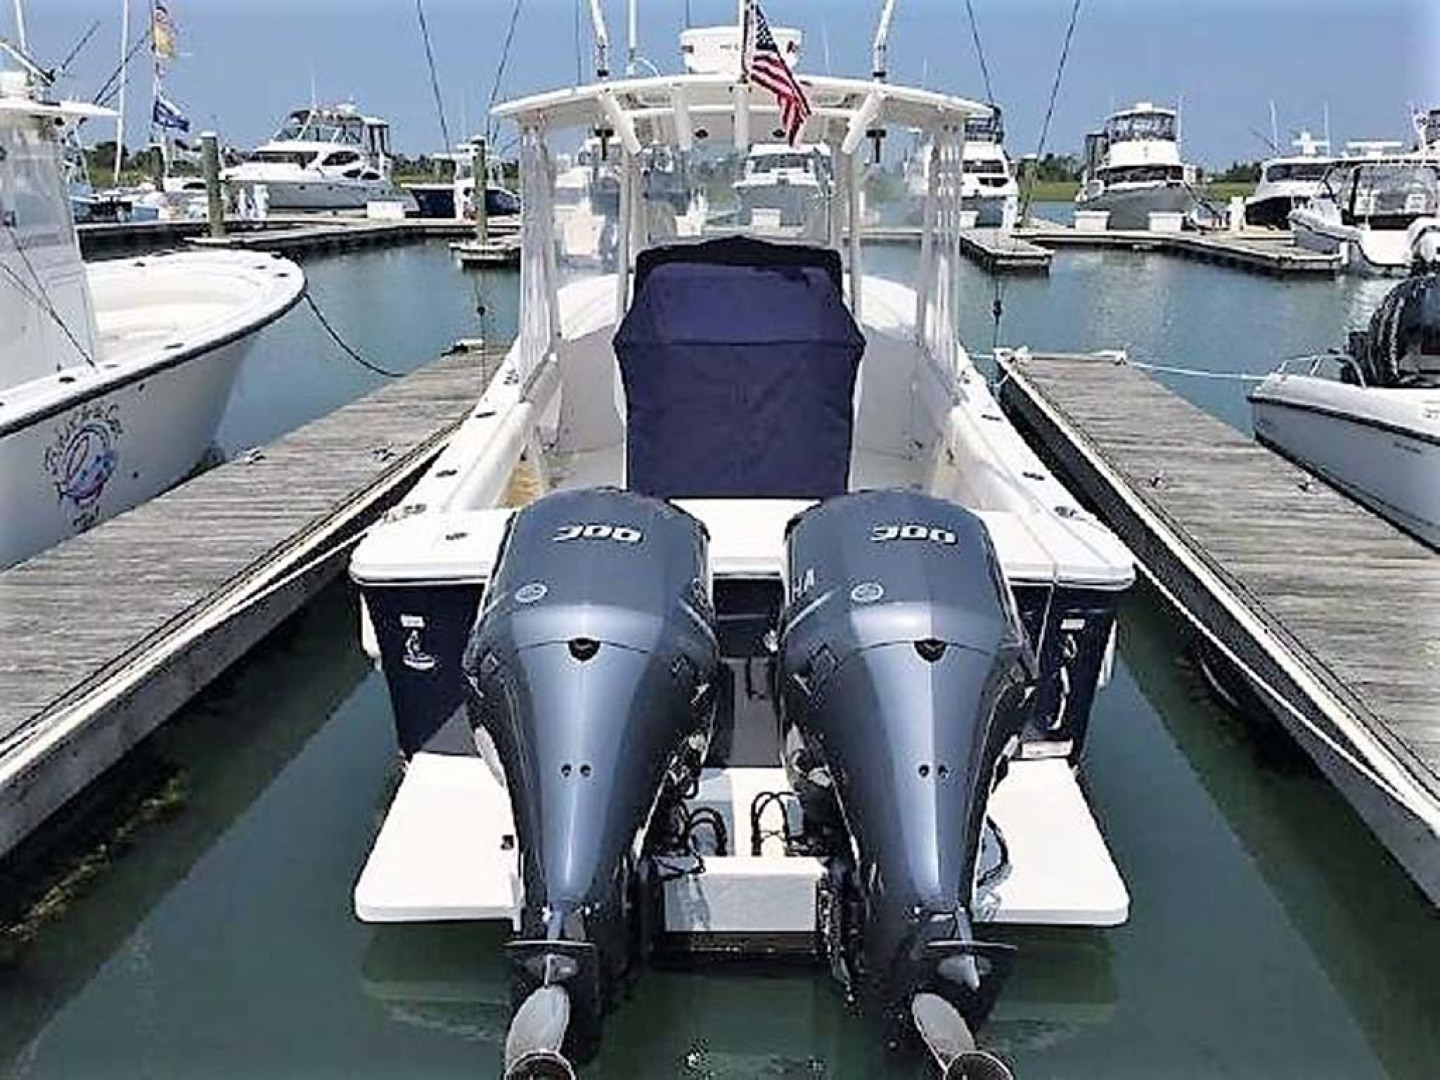 Regulator-28 FS Center Console 2014 -Mamaroneck-New York-United States-Engines-1089421 | Thumbnail